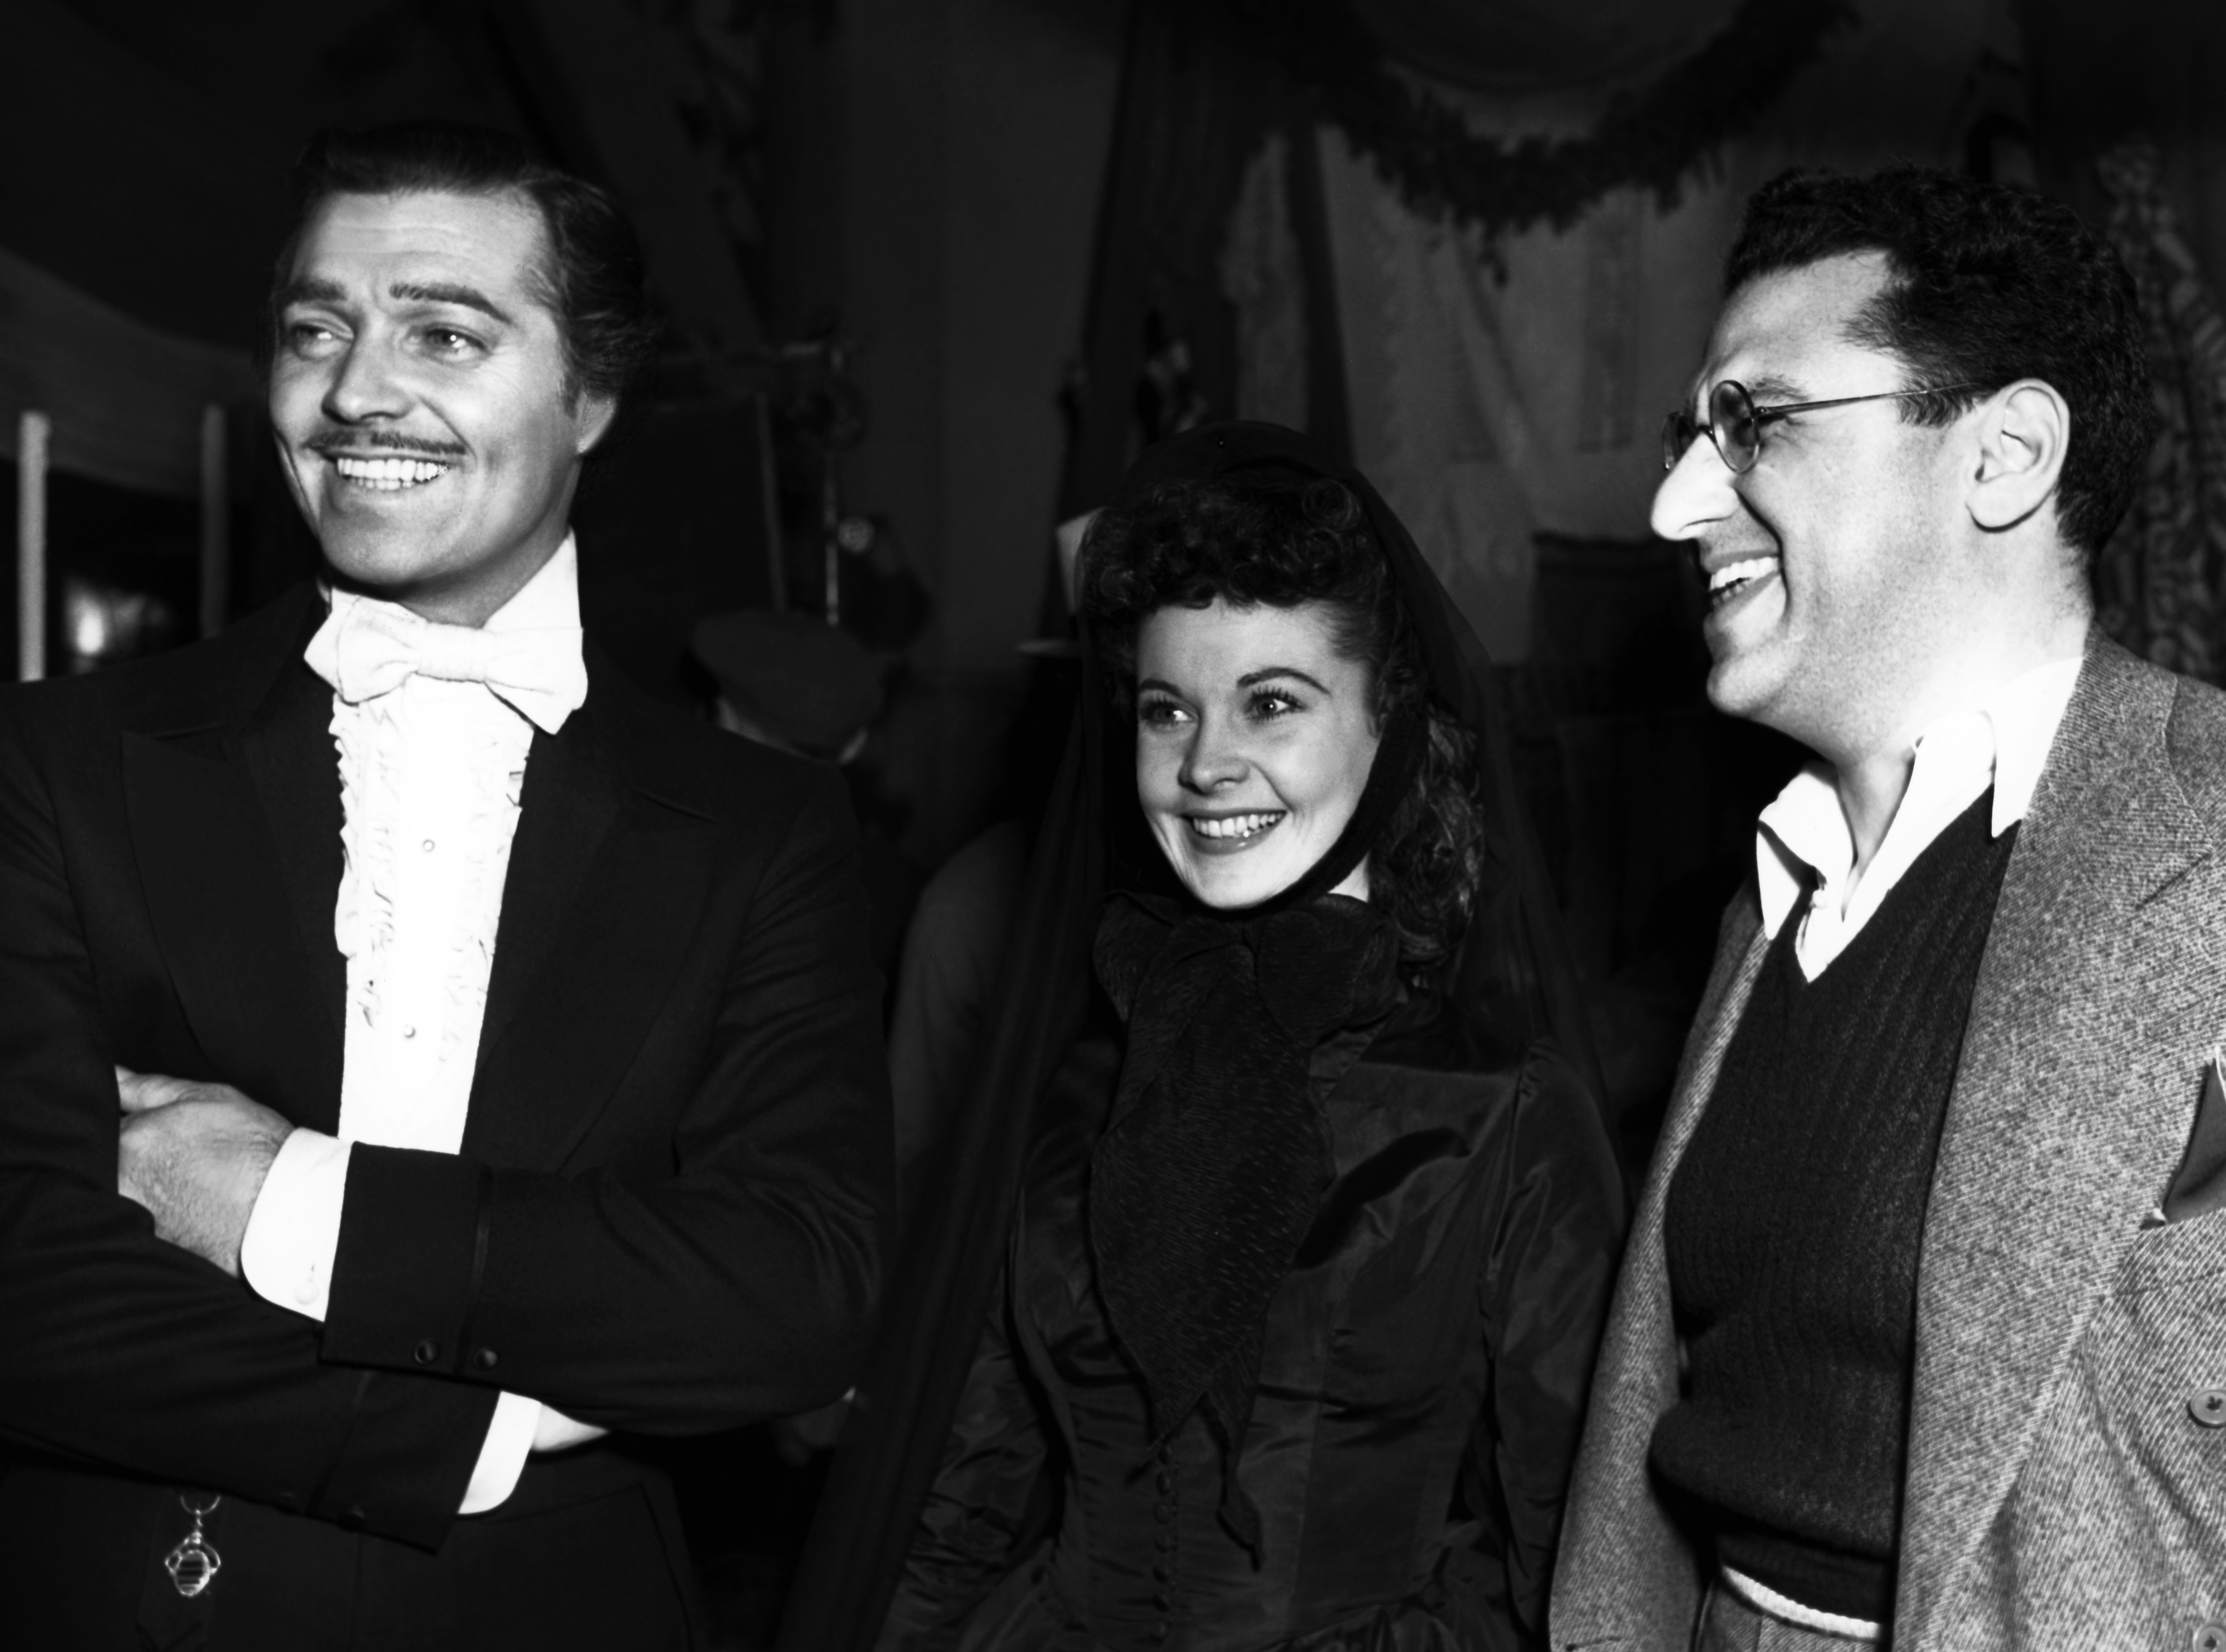 From left: Clark Gable, as Rhett Butler, Vivien Leigh, as Scarlett O'Hara, and and original director George Cukor on the set of Gone with the Wind in 1939.